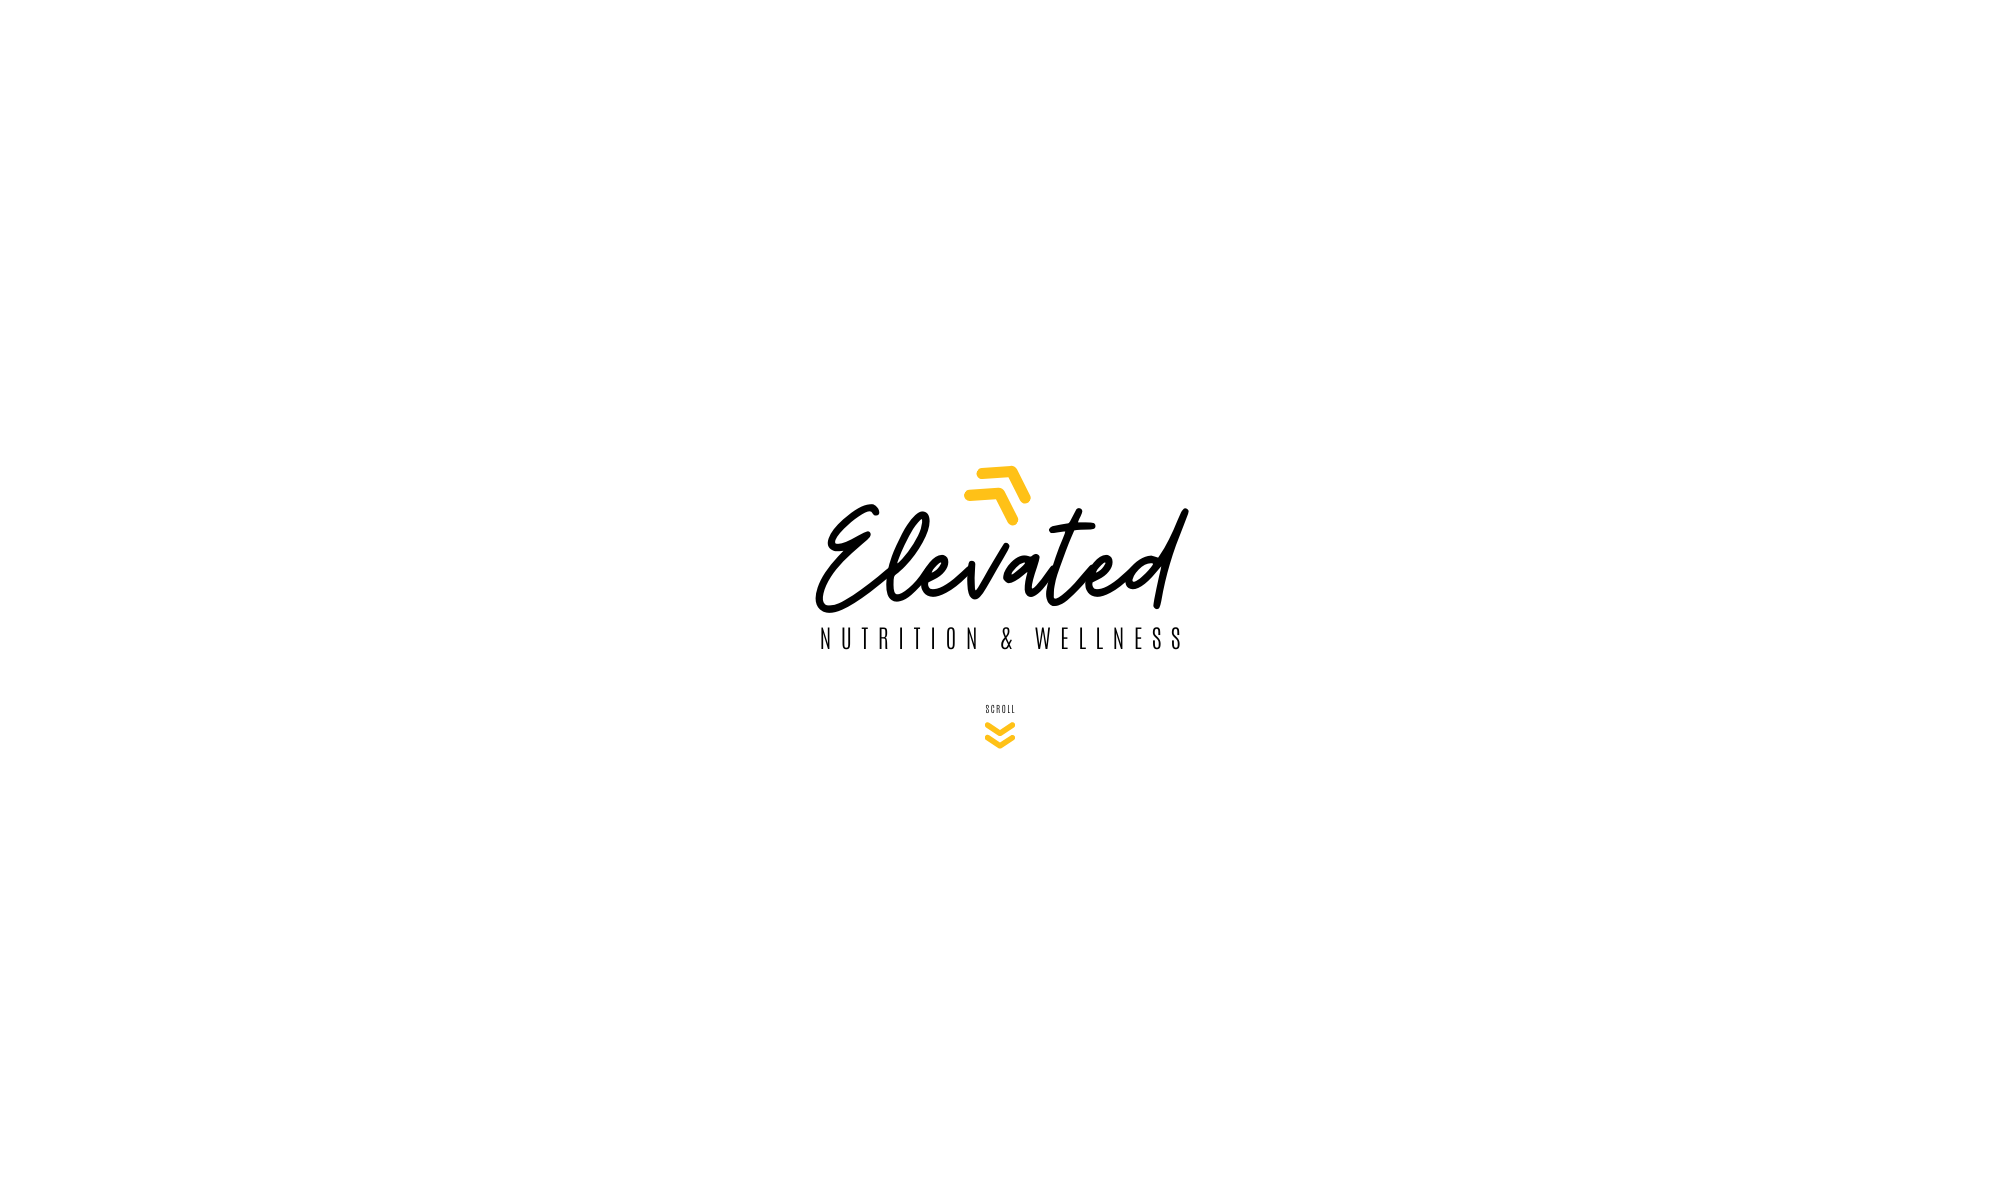 Elevated Nutrition & Wellness